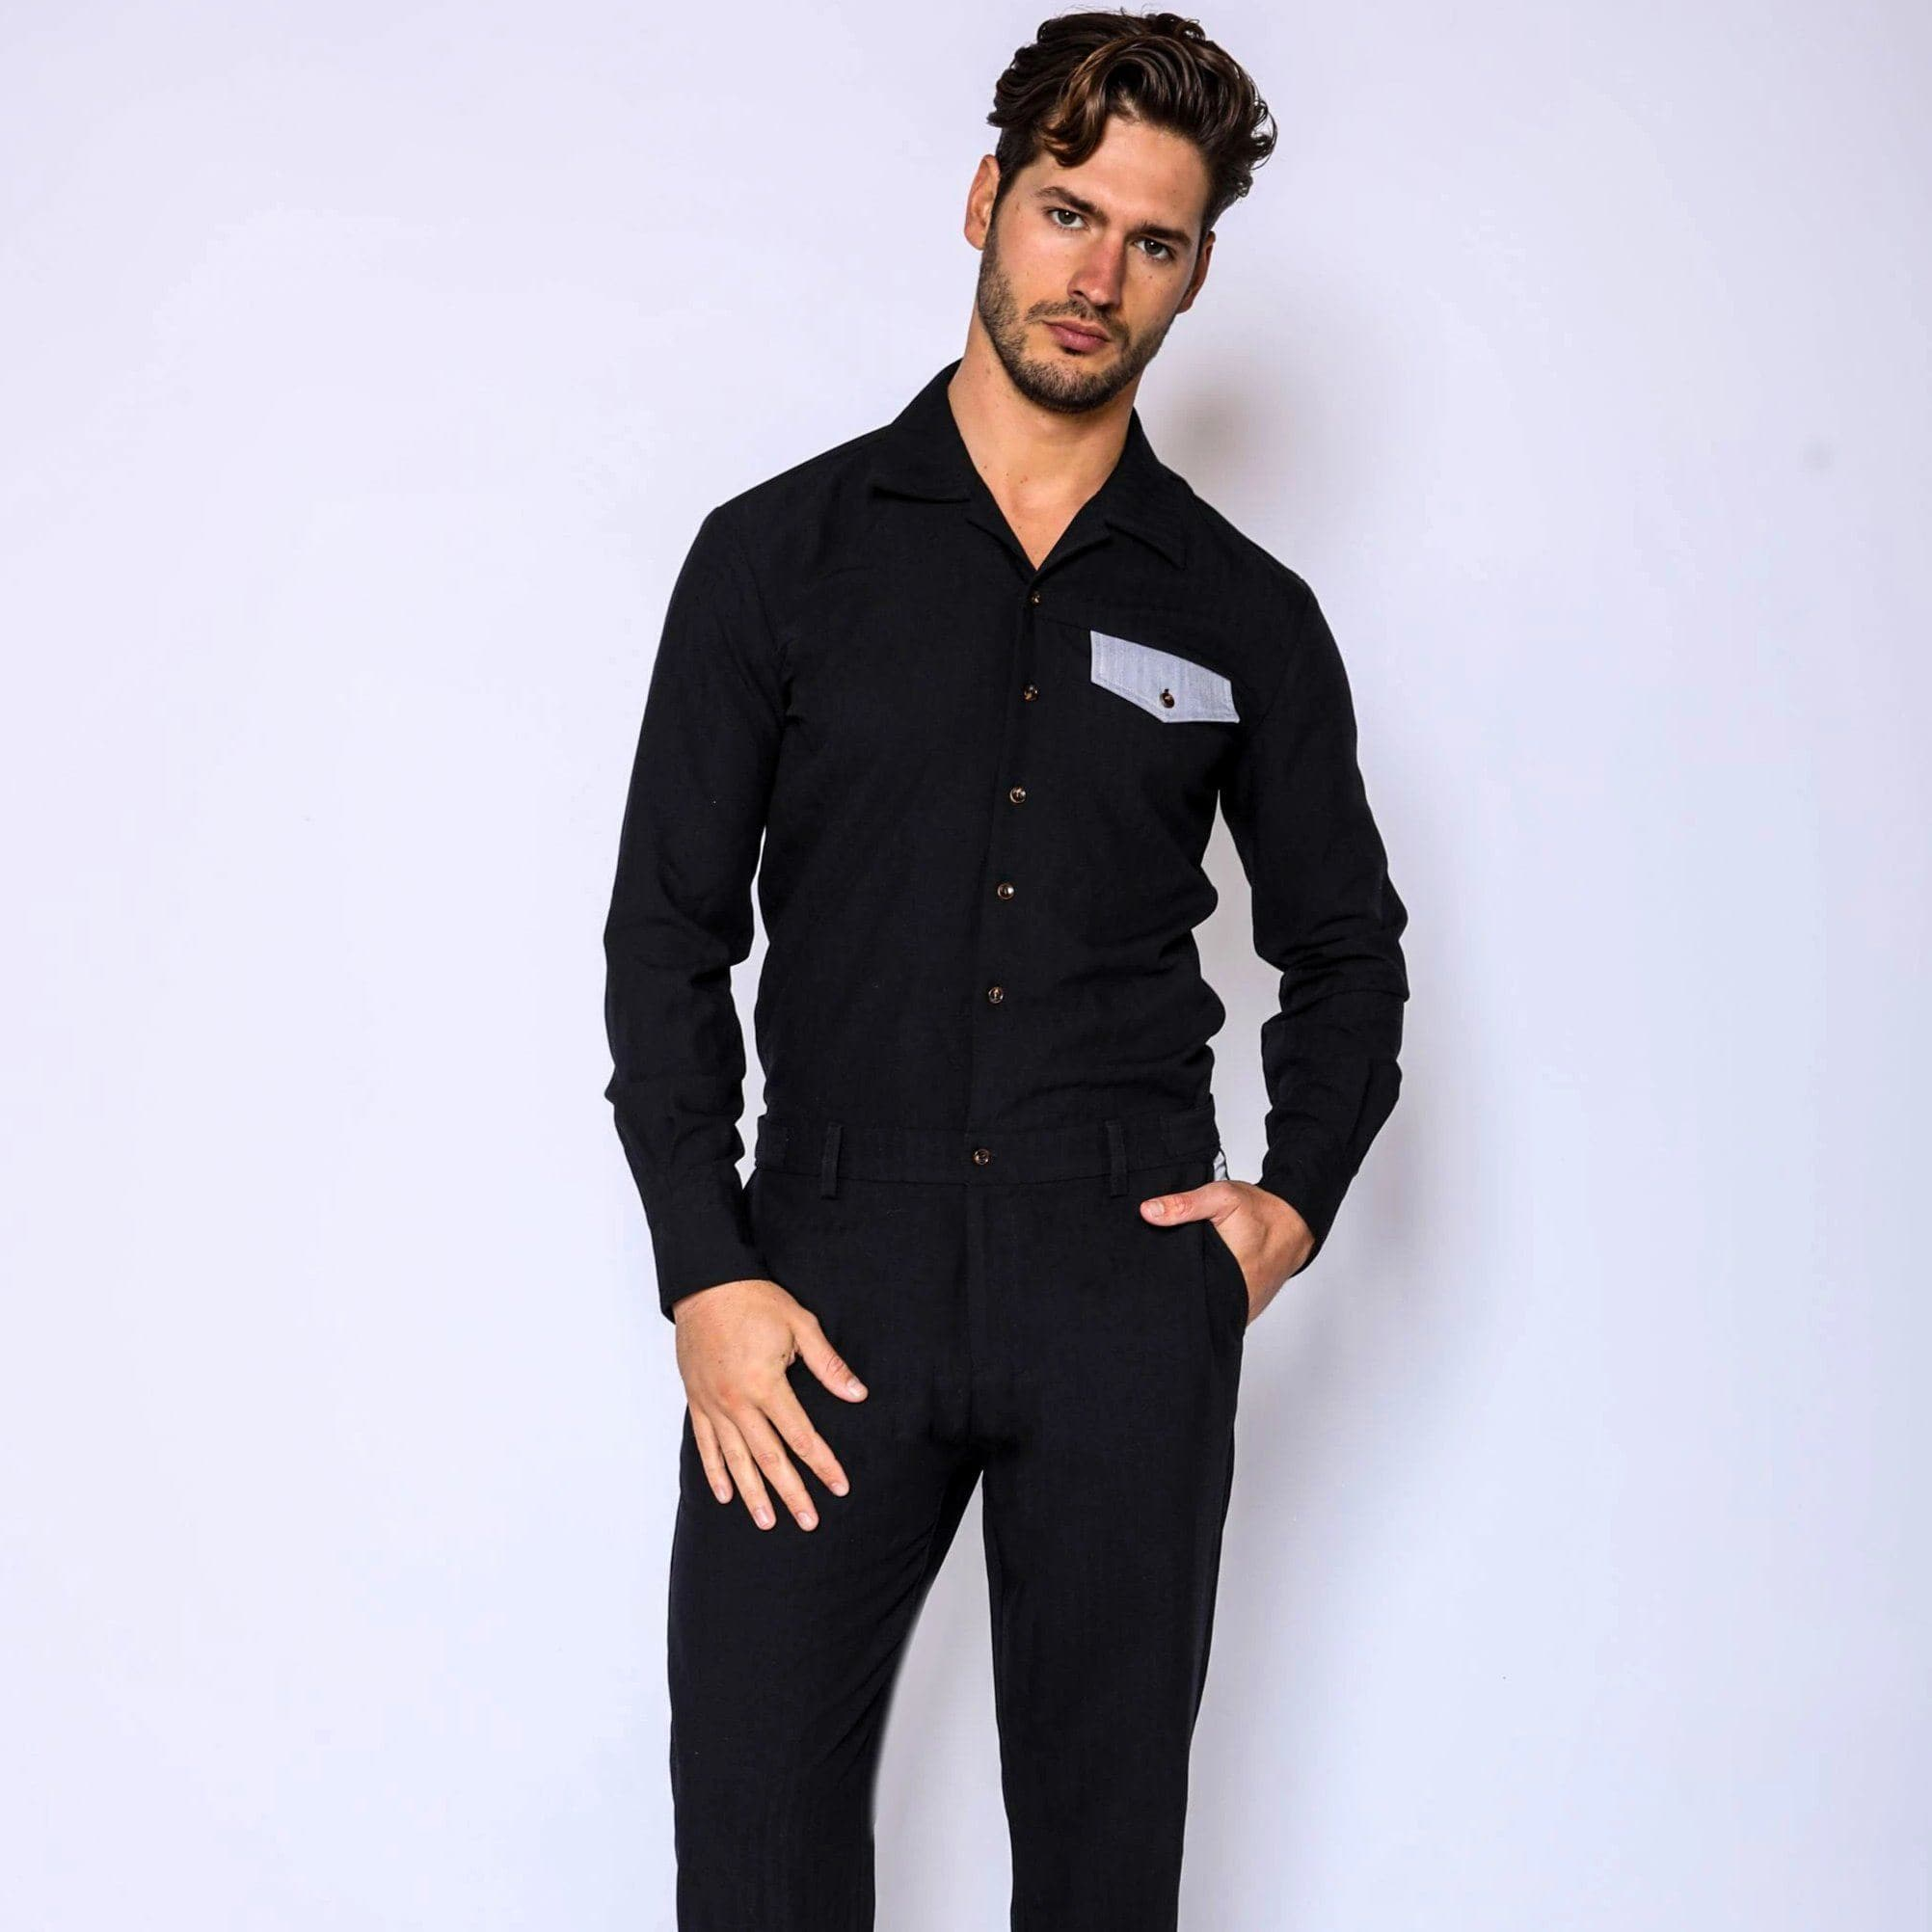 JUMPERJACK - RomperJack, Mens Jumpsuit - Male Romper